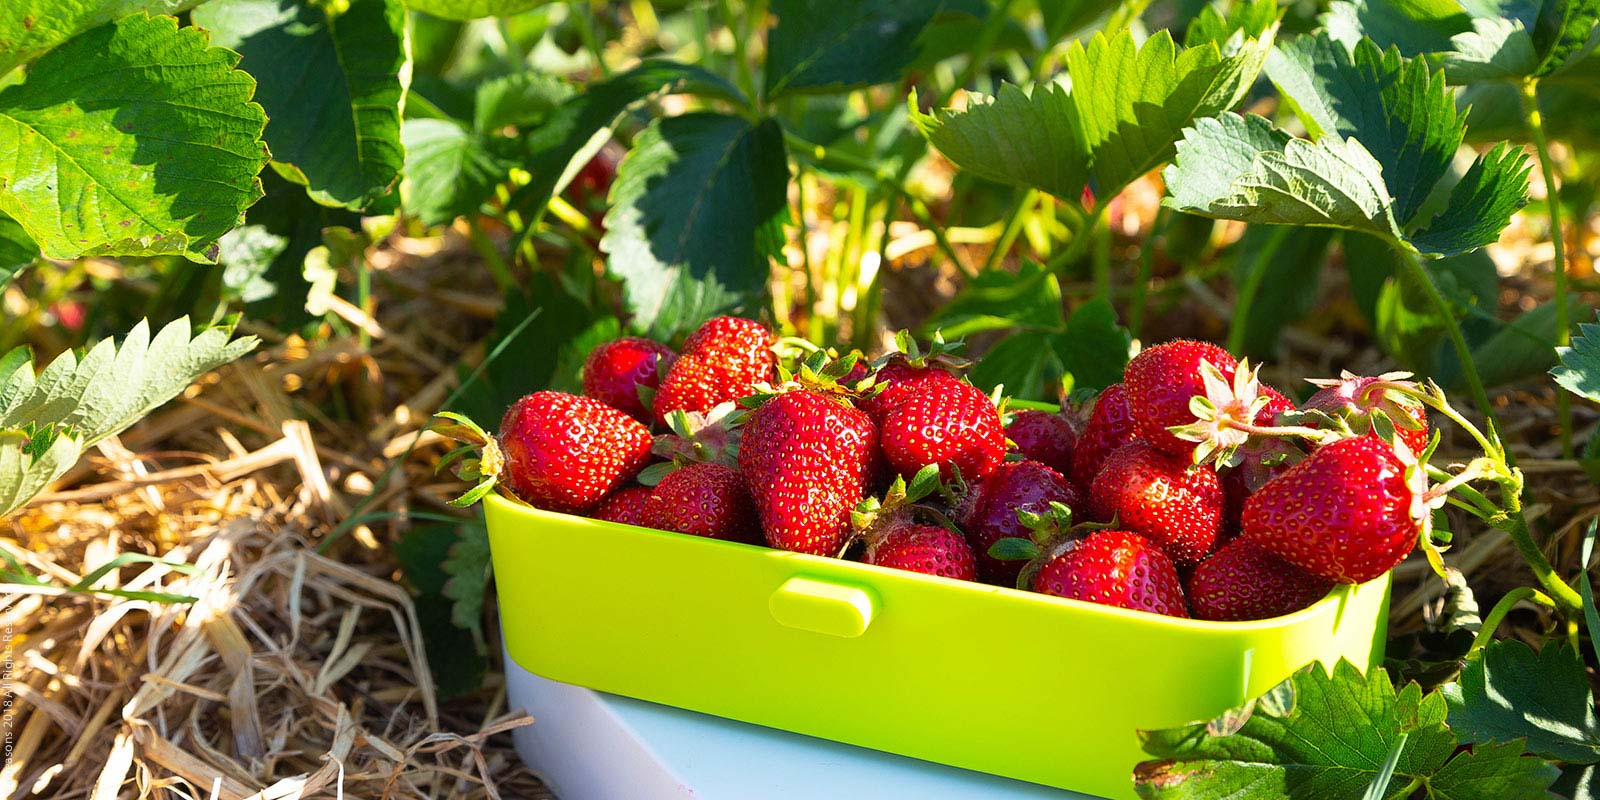 eSeasons Bento Lunchbox: A Little Luxury, handpicked strawberries straight from the fields